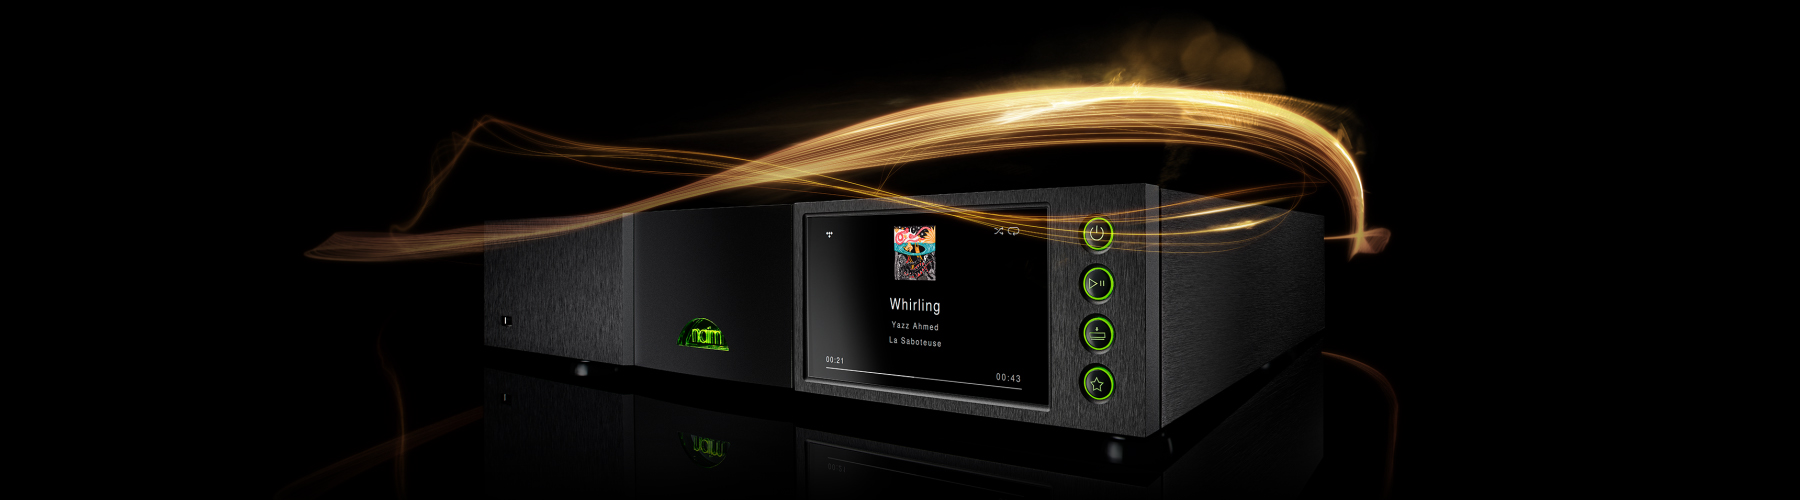 Introducing Our New Network Players | Naim Audio